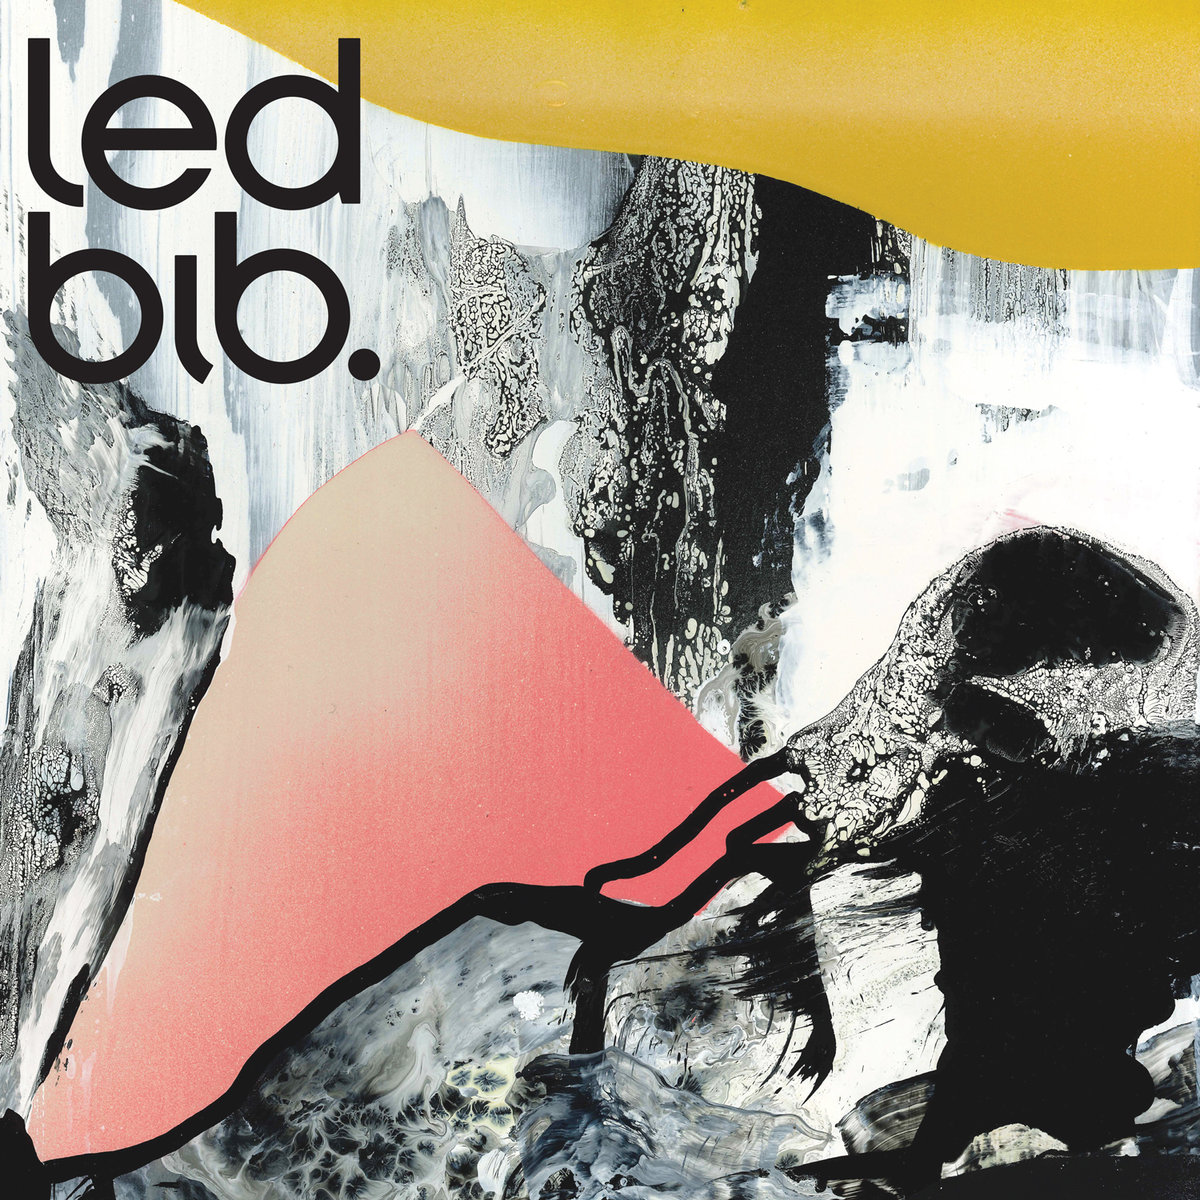 LED BIB - Led Bib & Sharron Fortnam : Its Morning cover